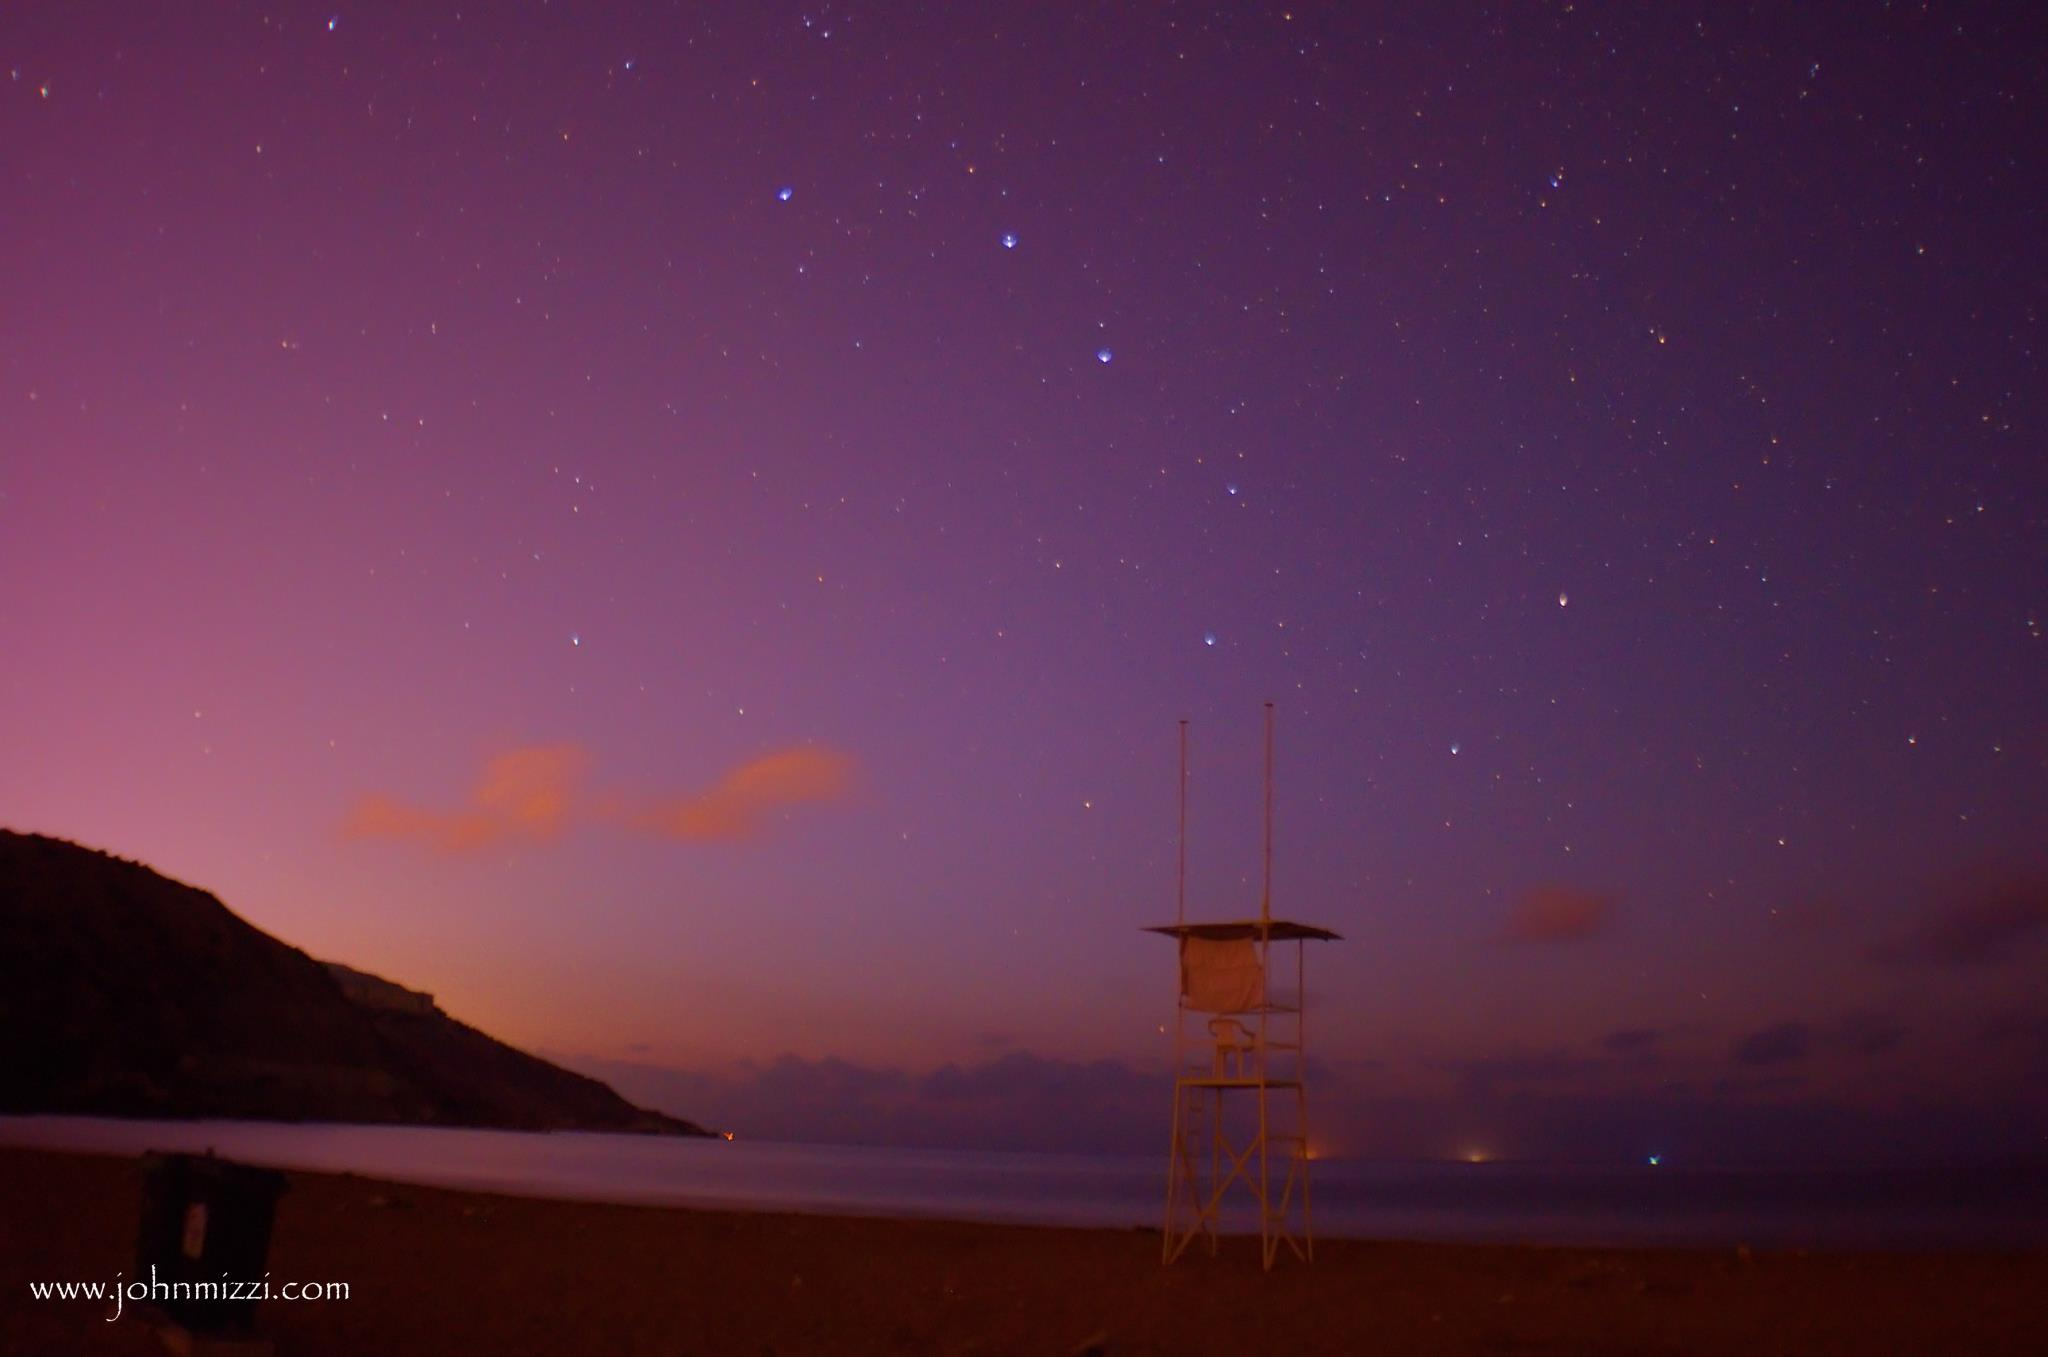 Dusk sky at beach with Big Dipper